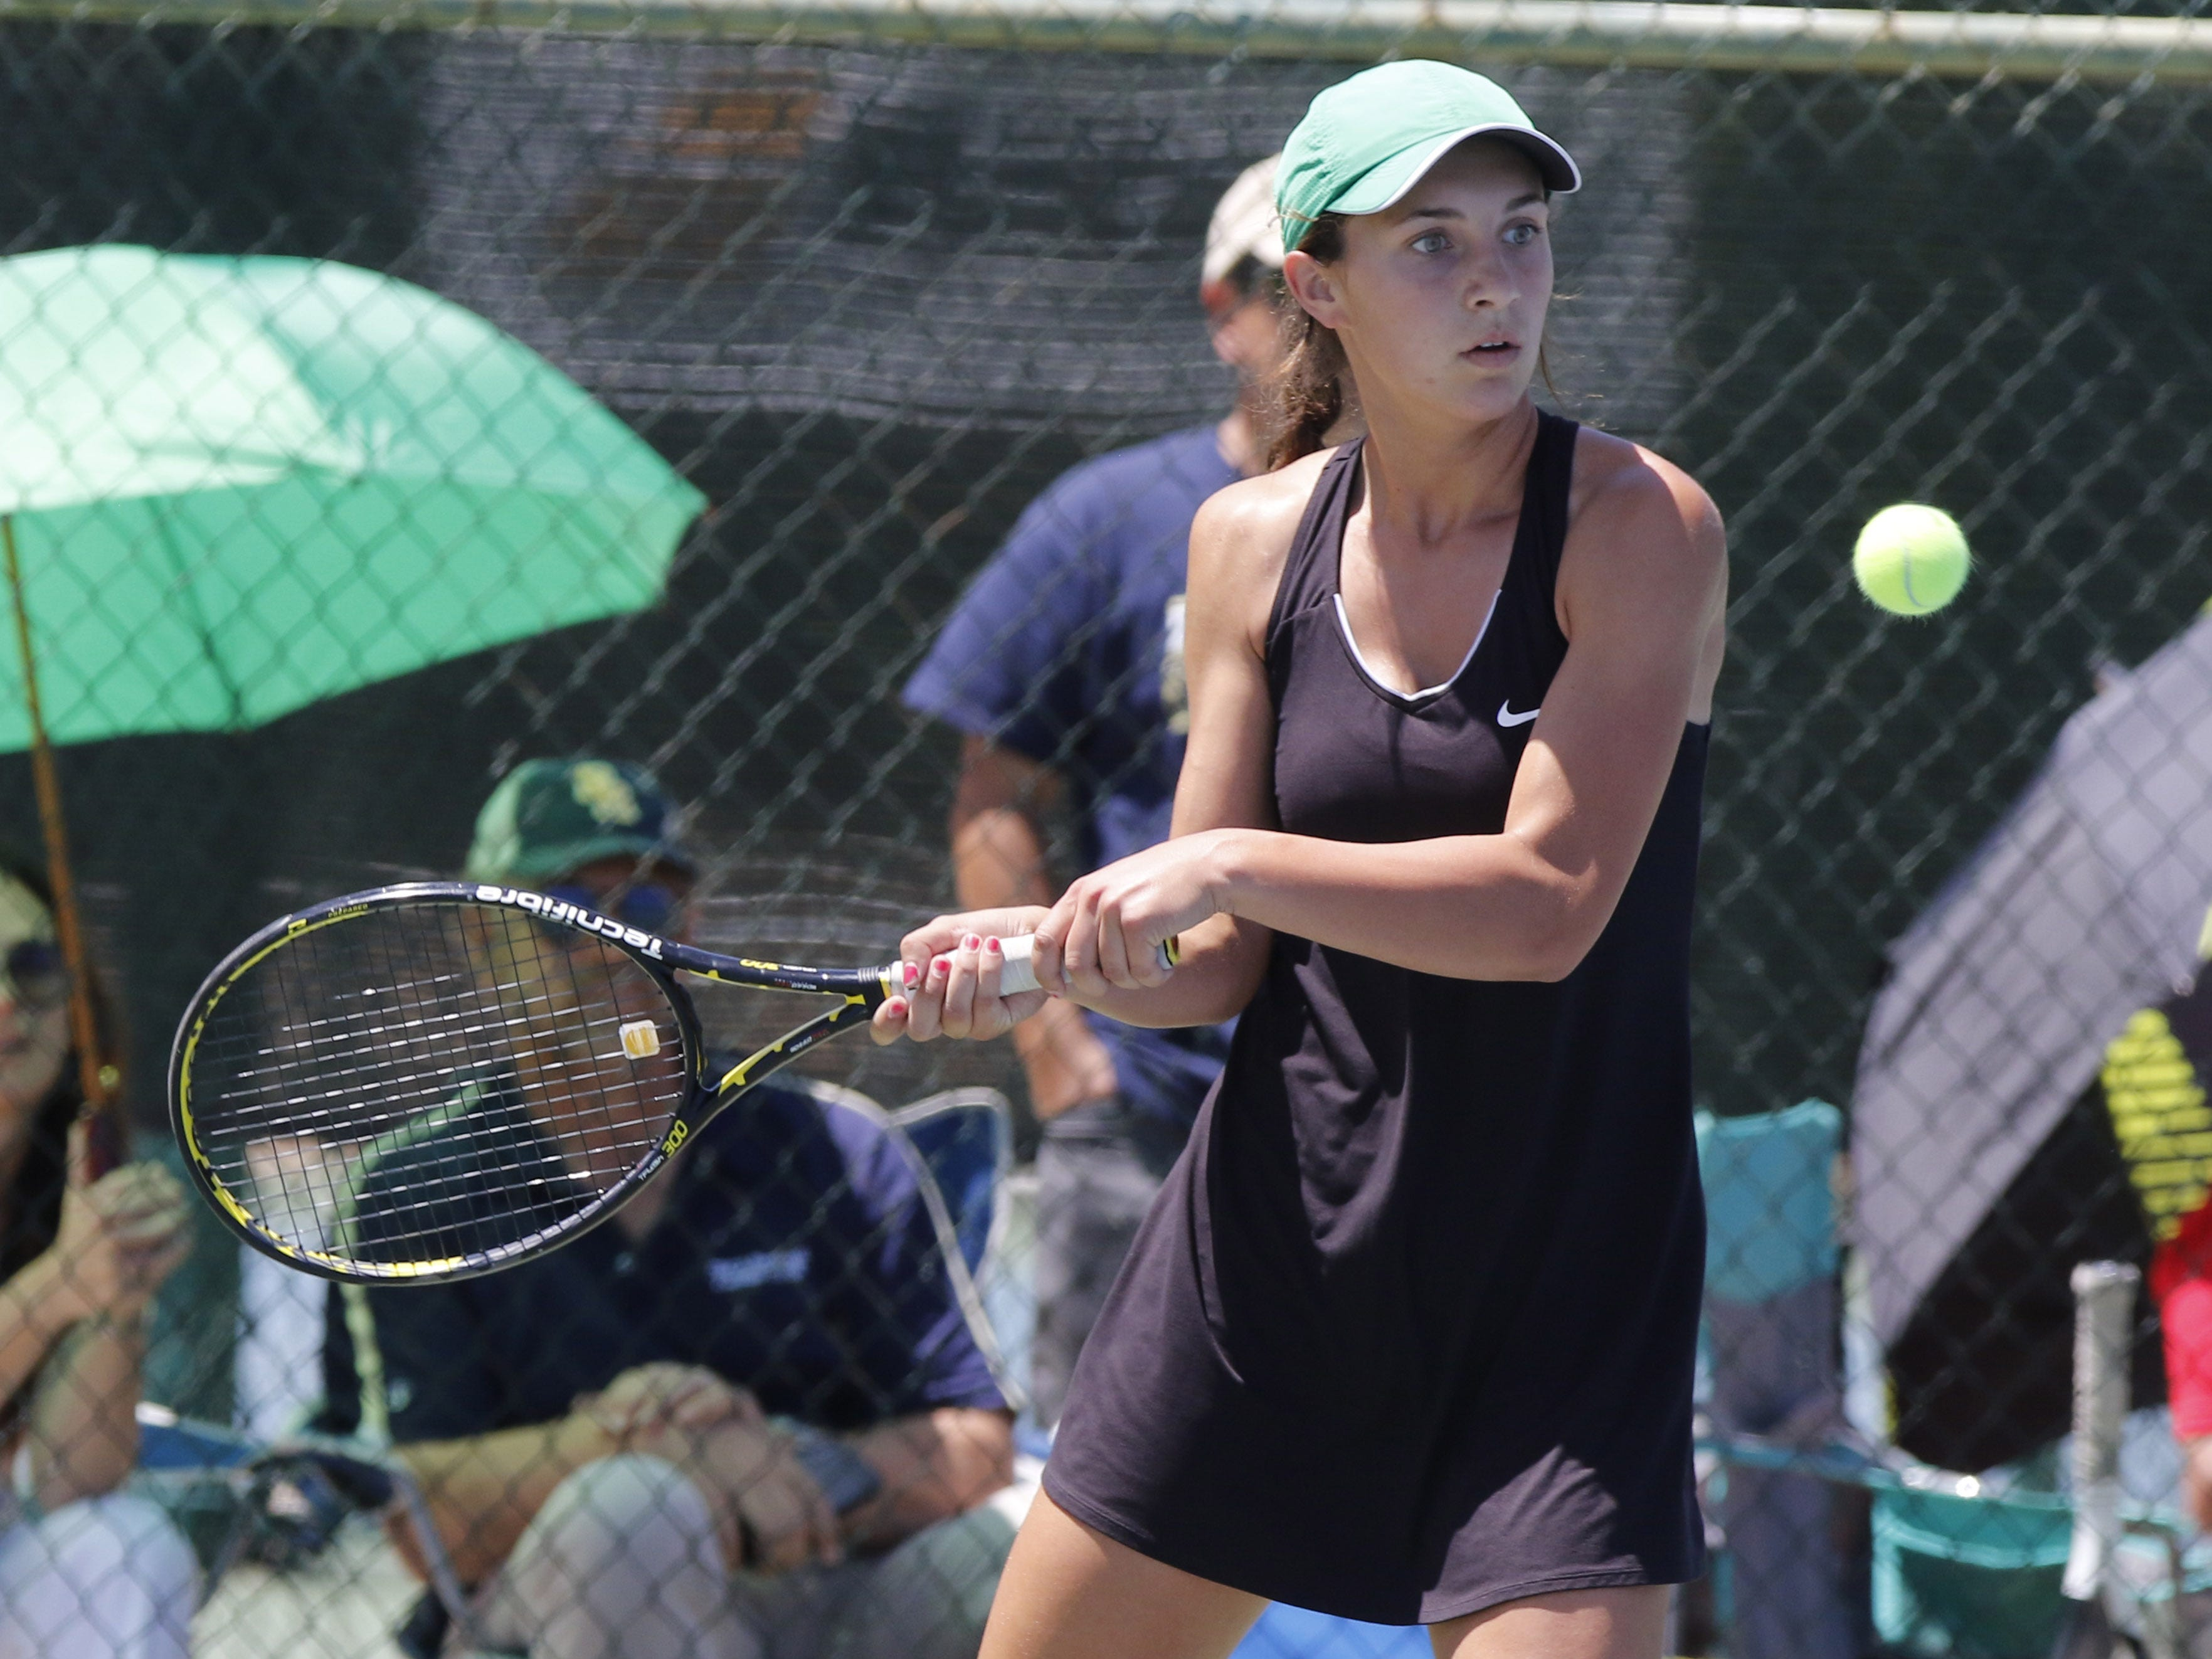 Thatcher's Ashlyn McMaster works her backhand as she plays Pusch Ridge's Emma Reily during the Division III tennis team state championship in Glendale, Arizona, May 04, 2019.